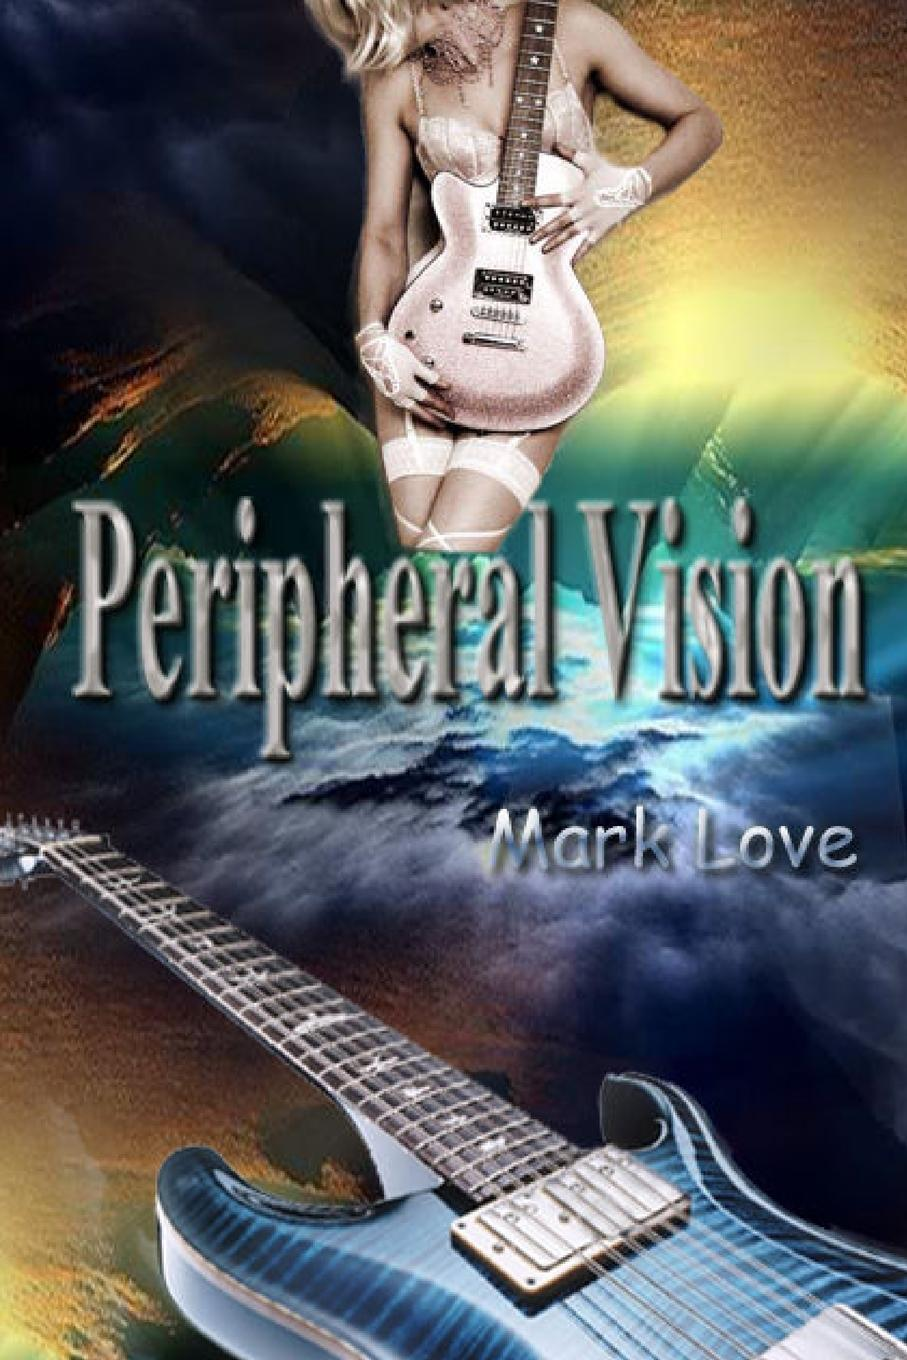 Mark Love Peripheral Vision jens brakenhoff life as we know it